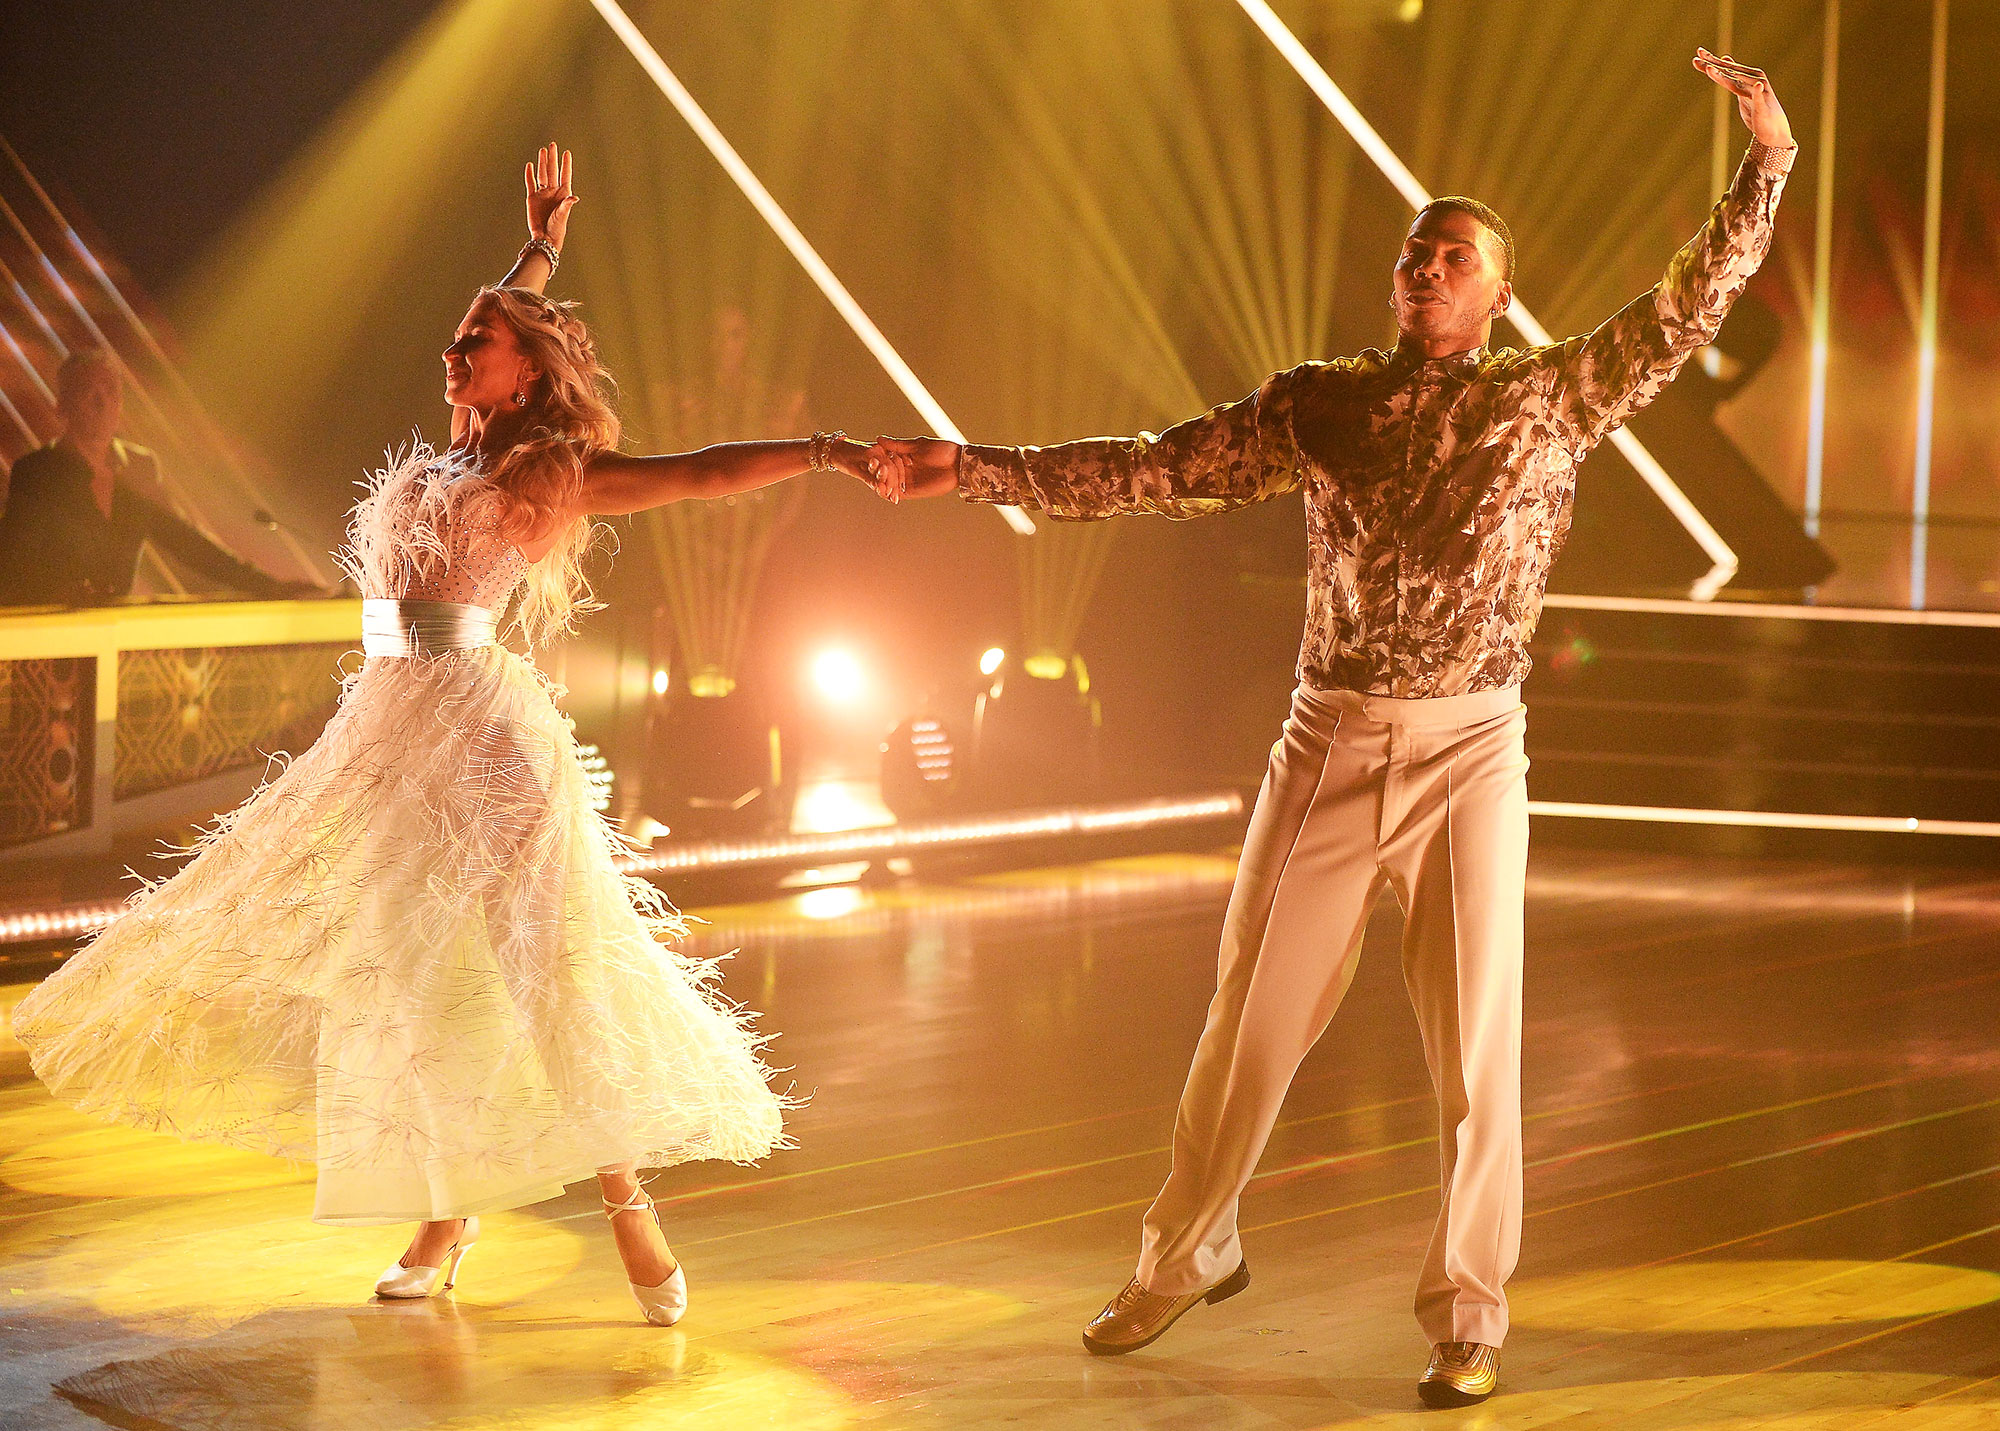 Daniella Karagach and Nelly on Dancing With the Stars Nelly Reveals How Much Weight He Has Lost on Dancing With the Stars